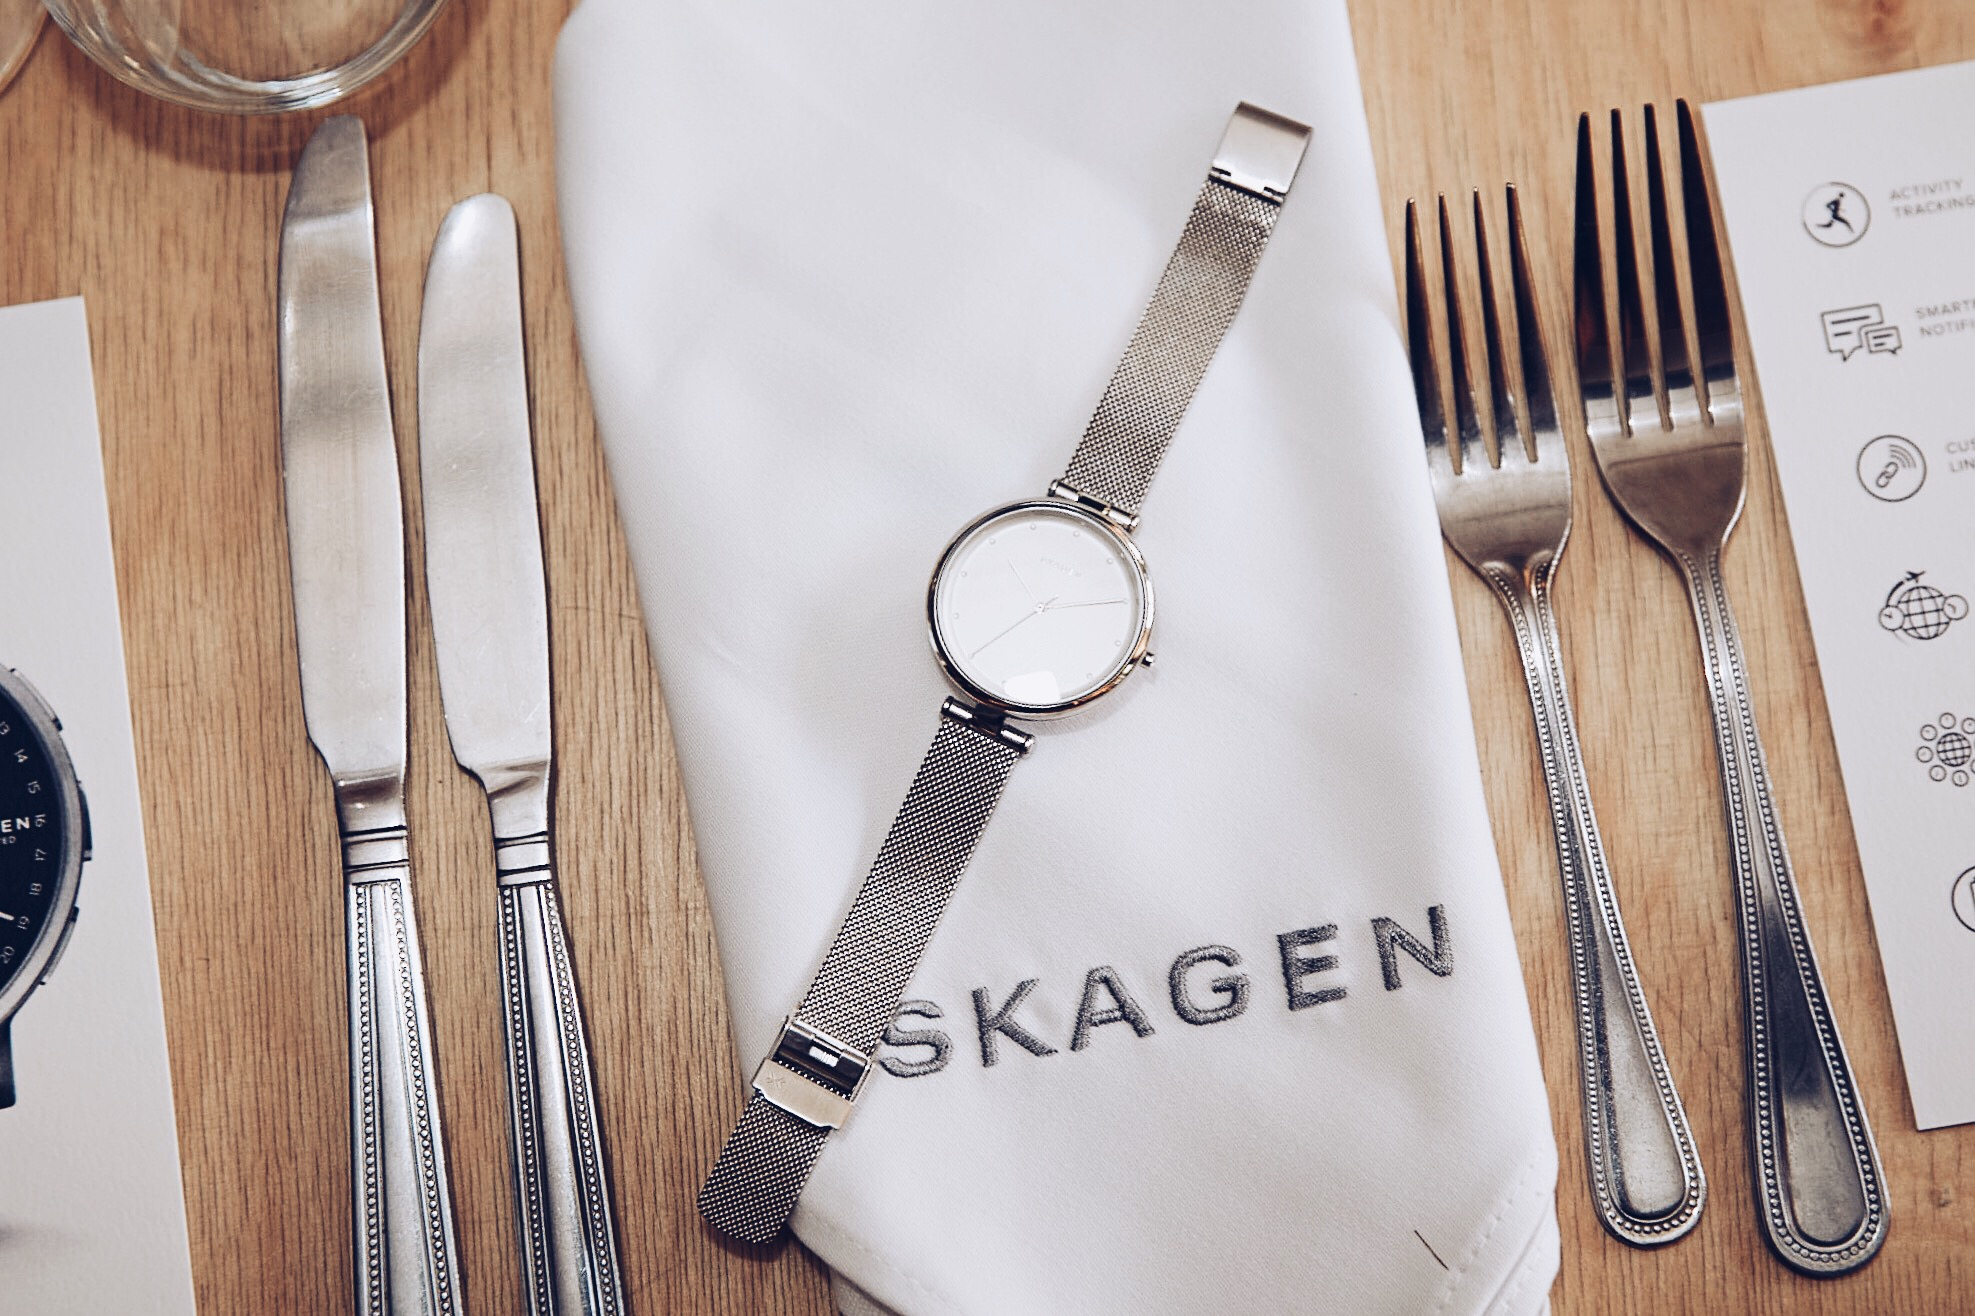 Skagen Watches New Launch Dinner London